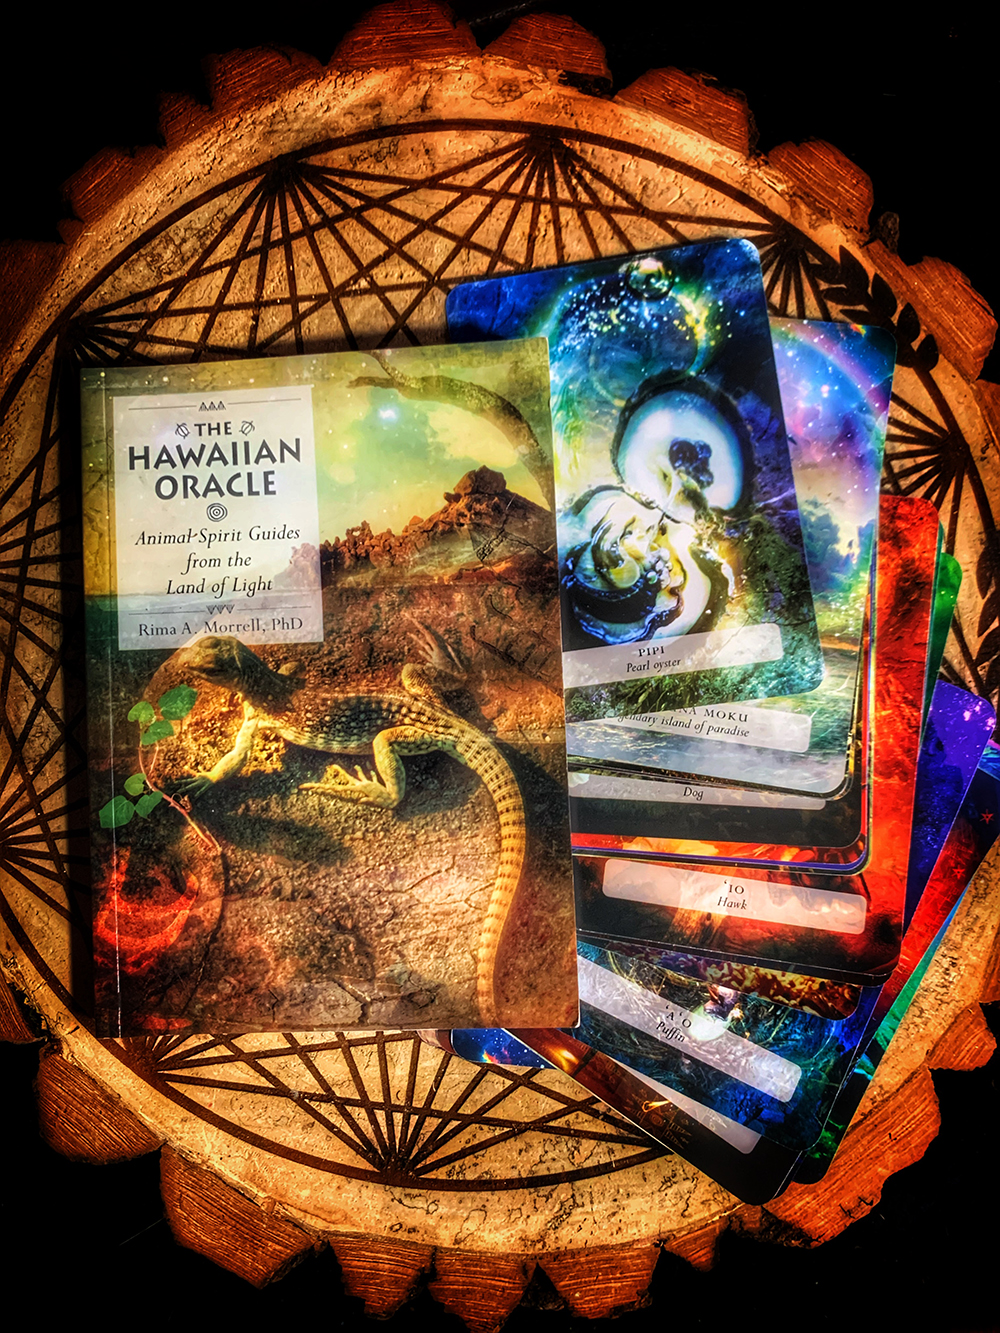 The Hawaiian Oracle: Animal Spirit Guides from the Land of Light